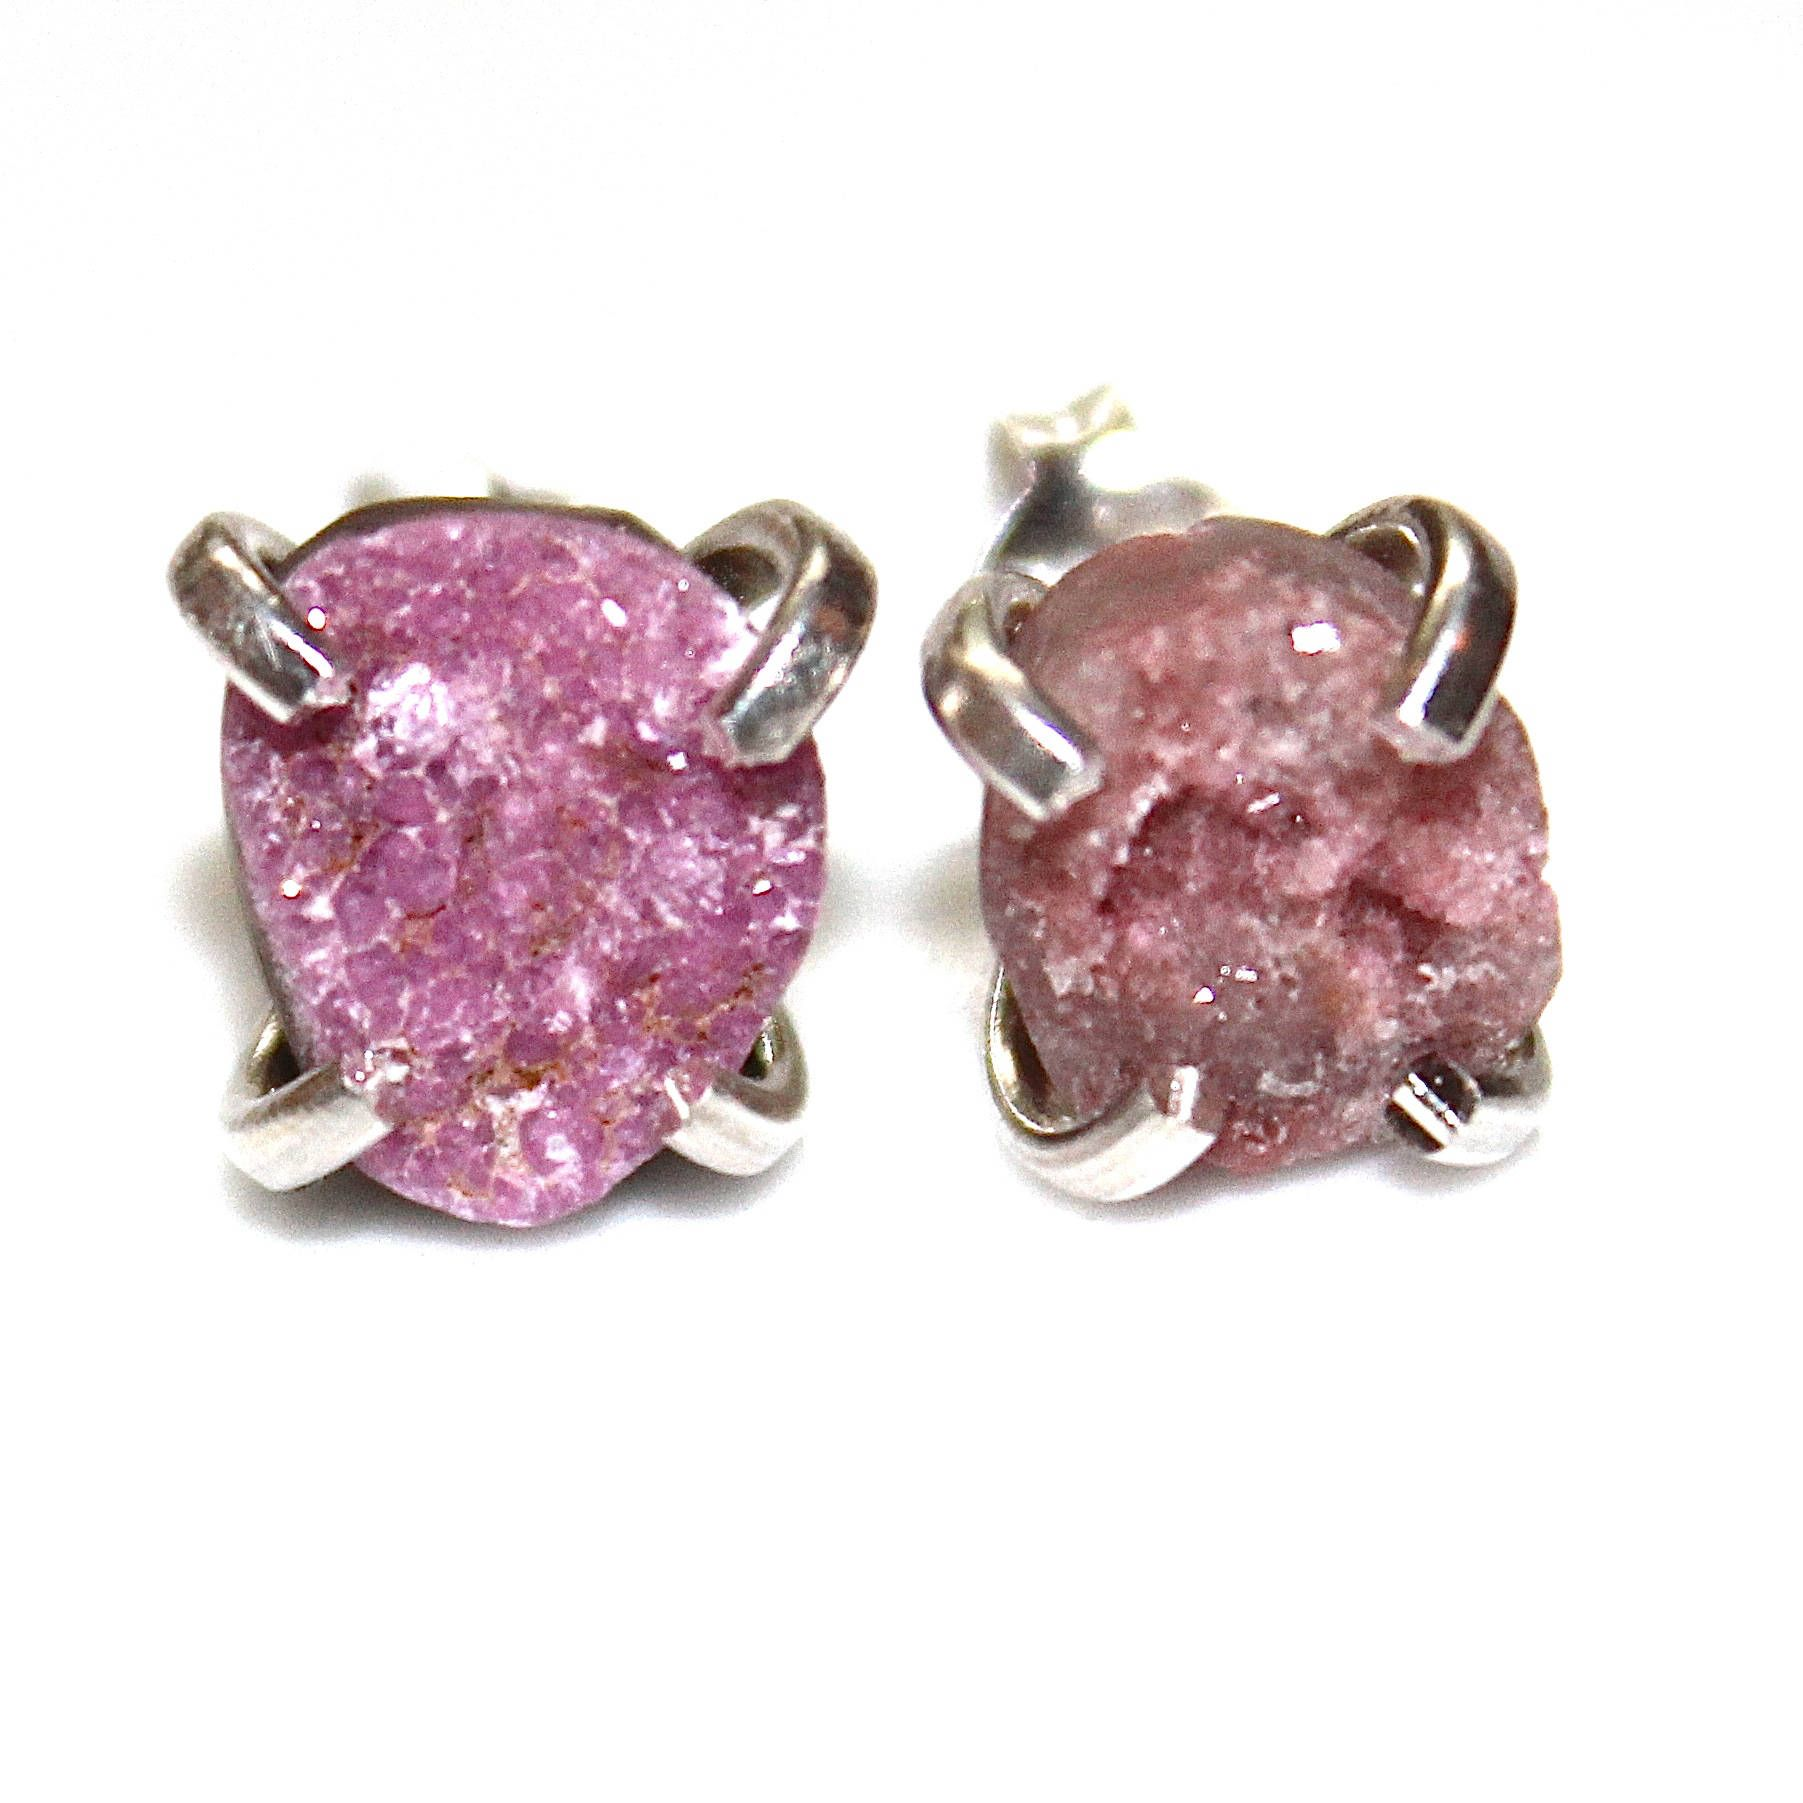 Natural Cobalto Calcite Druzy Earring Pink Druzy Earring Drusy Earring Druzy Jewelry Sparkly Pink Earring Drussy Earring Crystal Earring by FizzCandy on Etsy